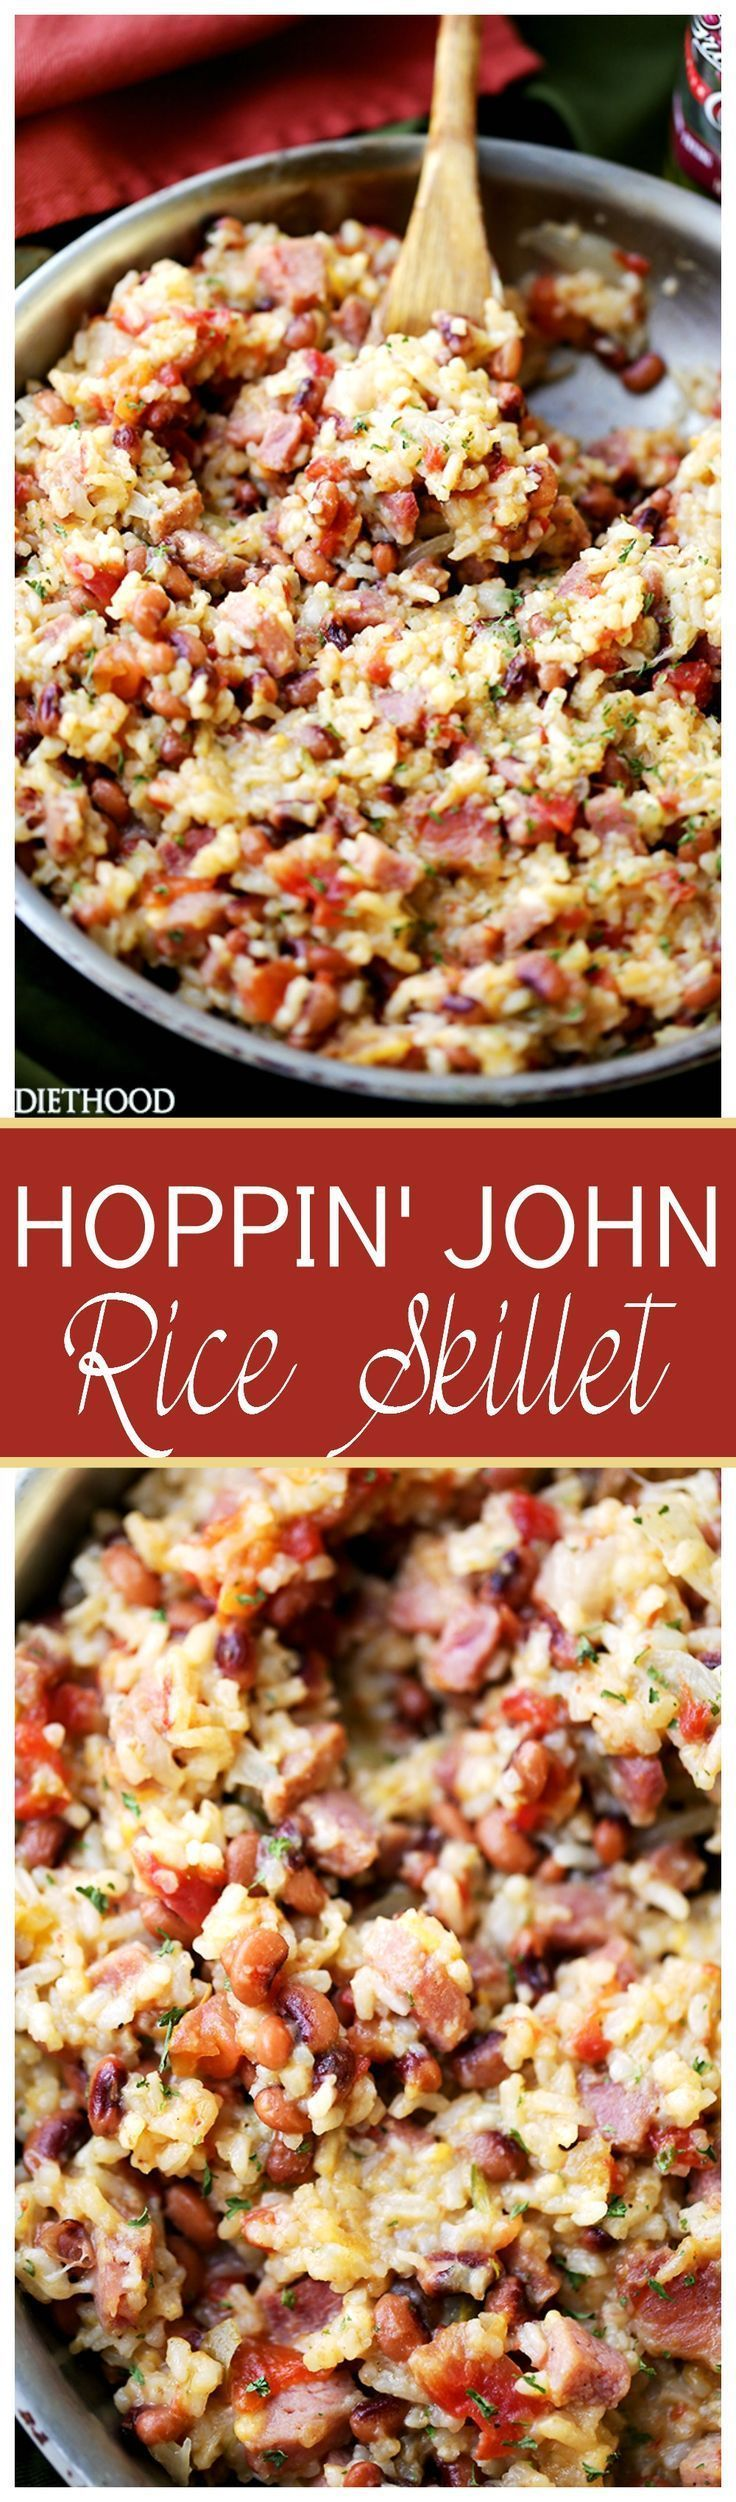 Hoppin' John Skillet Recipe - A classic Southern dish with black eyed peas, ham and rice, traditionally served on New Year's Day for good fortune in the coming year.